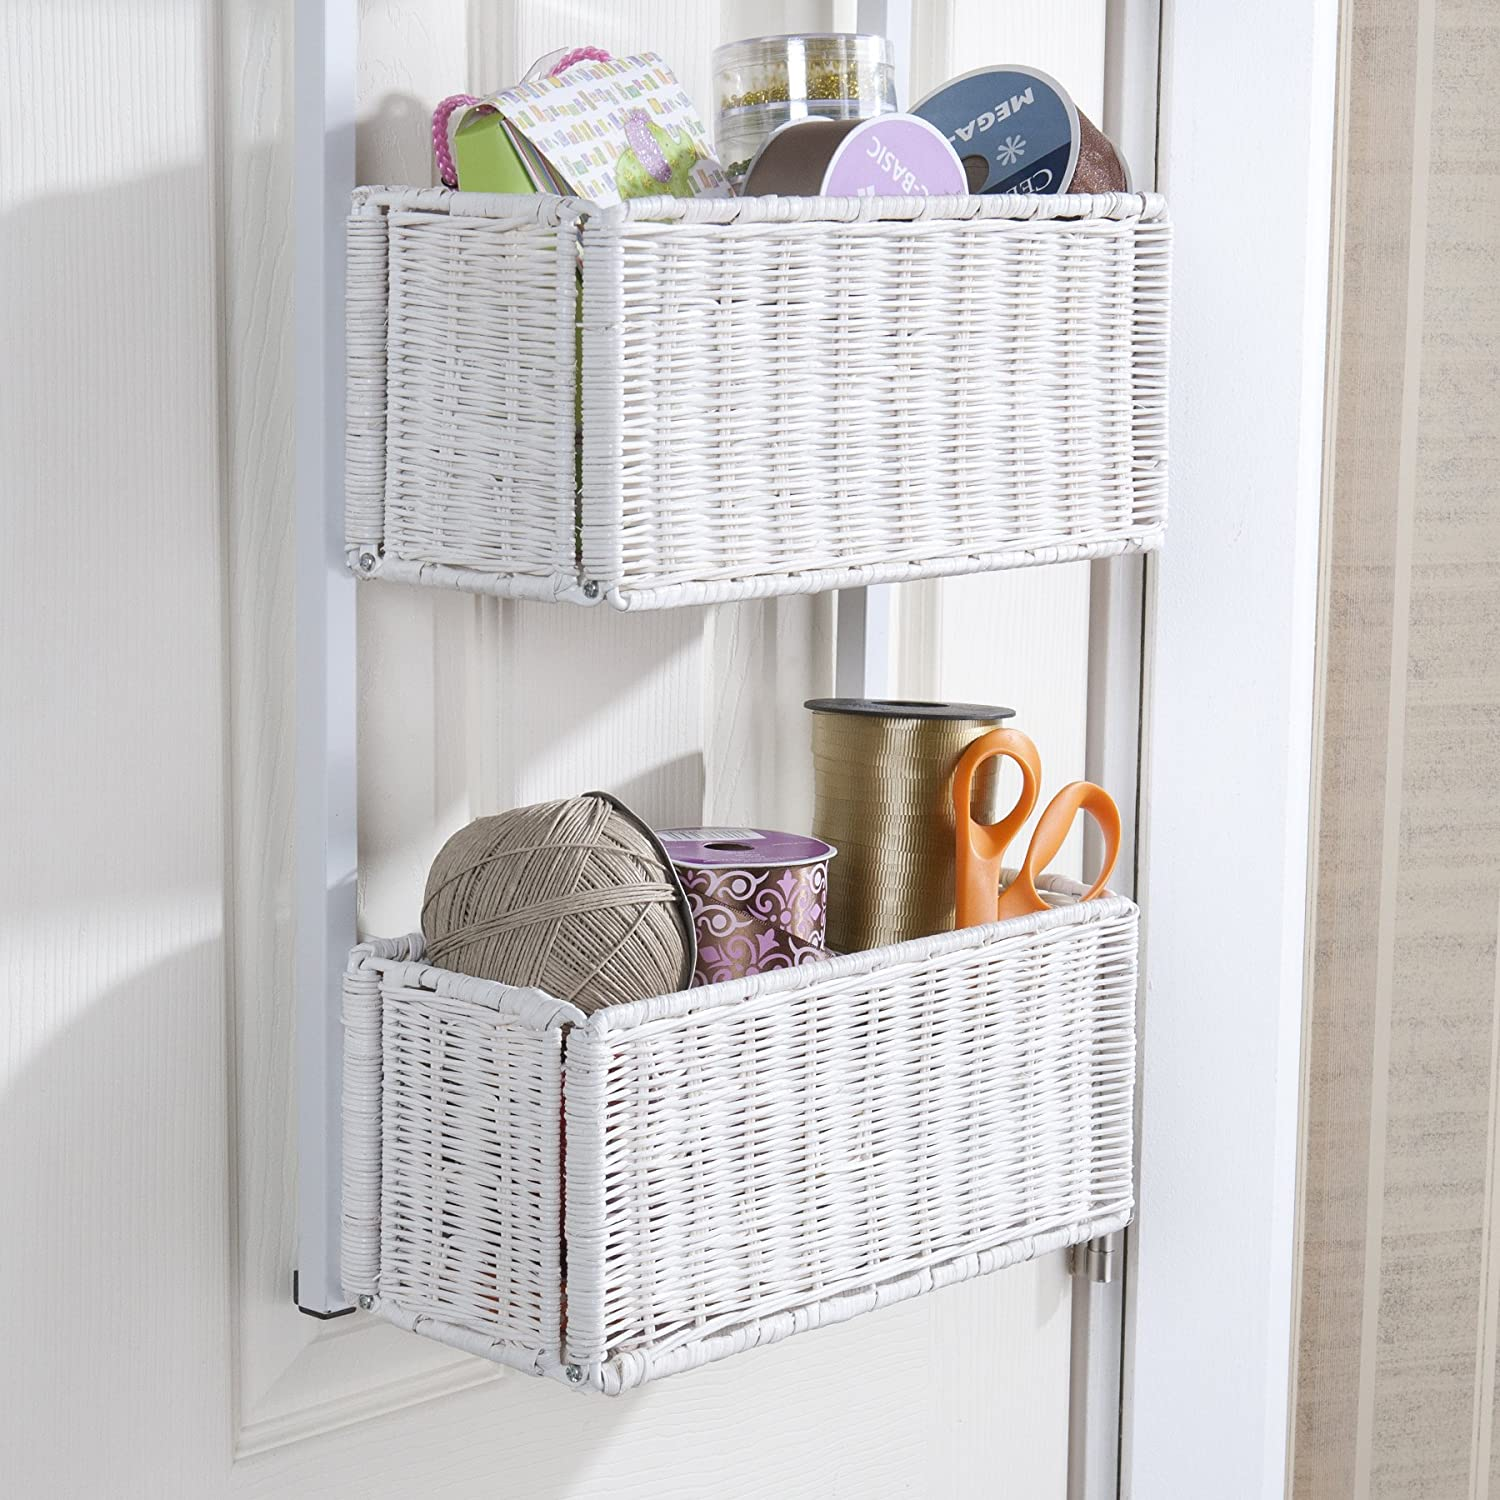 Amazon.com Southern Enterprises Over-The-Door 3-Tier Woven Basket Storage White Finish Home \u0026 Kitchen & Amazon.com: Southern Enterprises Over-The-Door 3-Tier Woven Basket ...